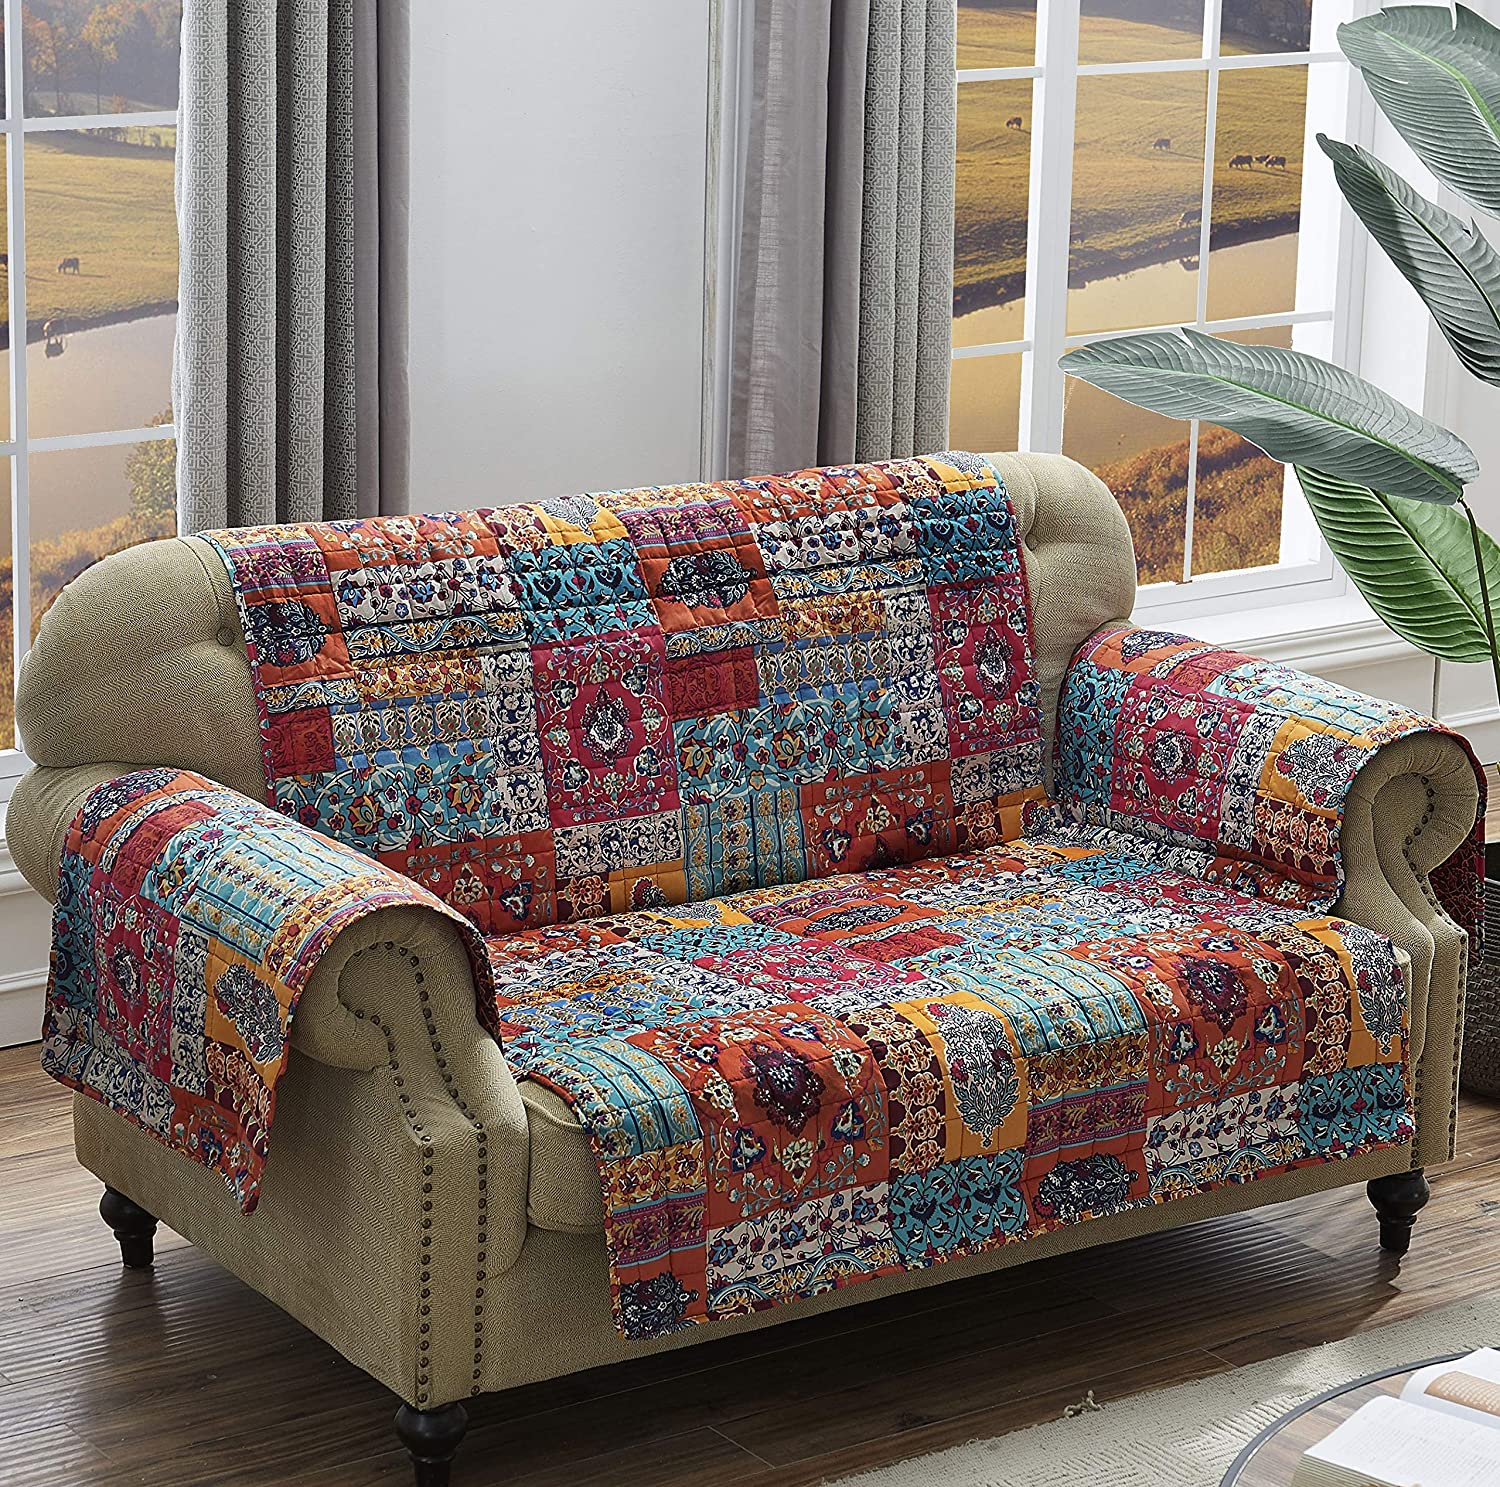 Barefoot Bungalow Indie Max 67% OFF Spice Slipcover Genuine Loveseat